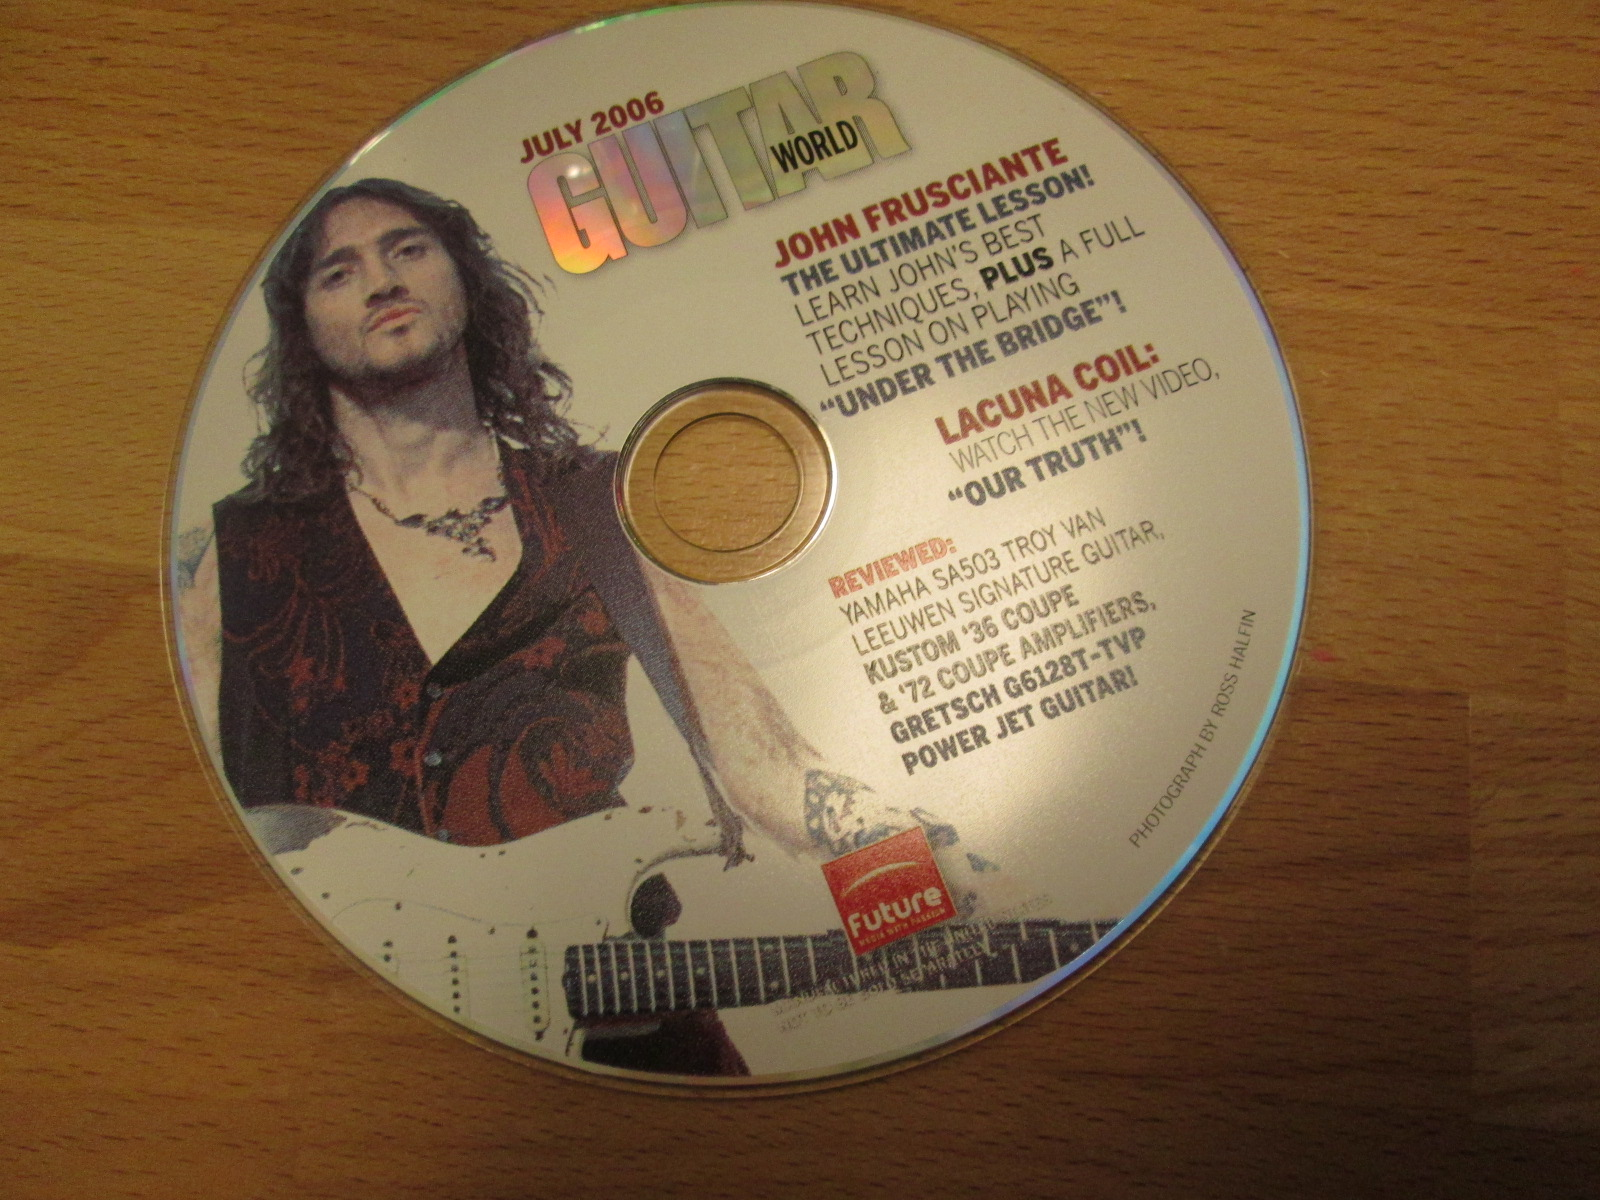 Guitar World CD-Rom July 2006 Featuring John Frusciante And Lacuna